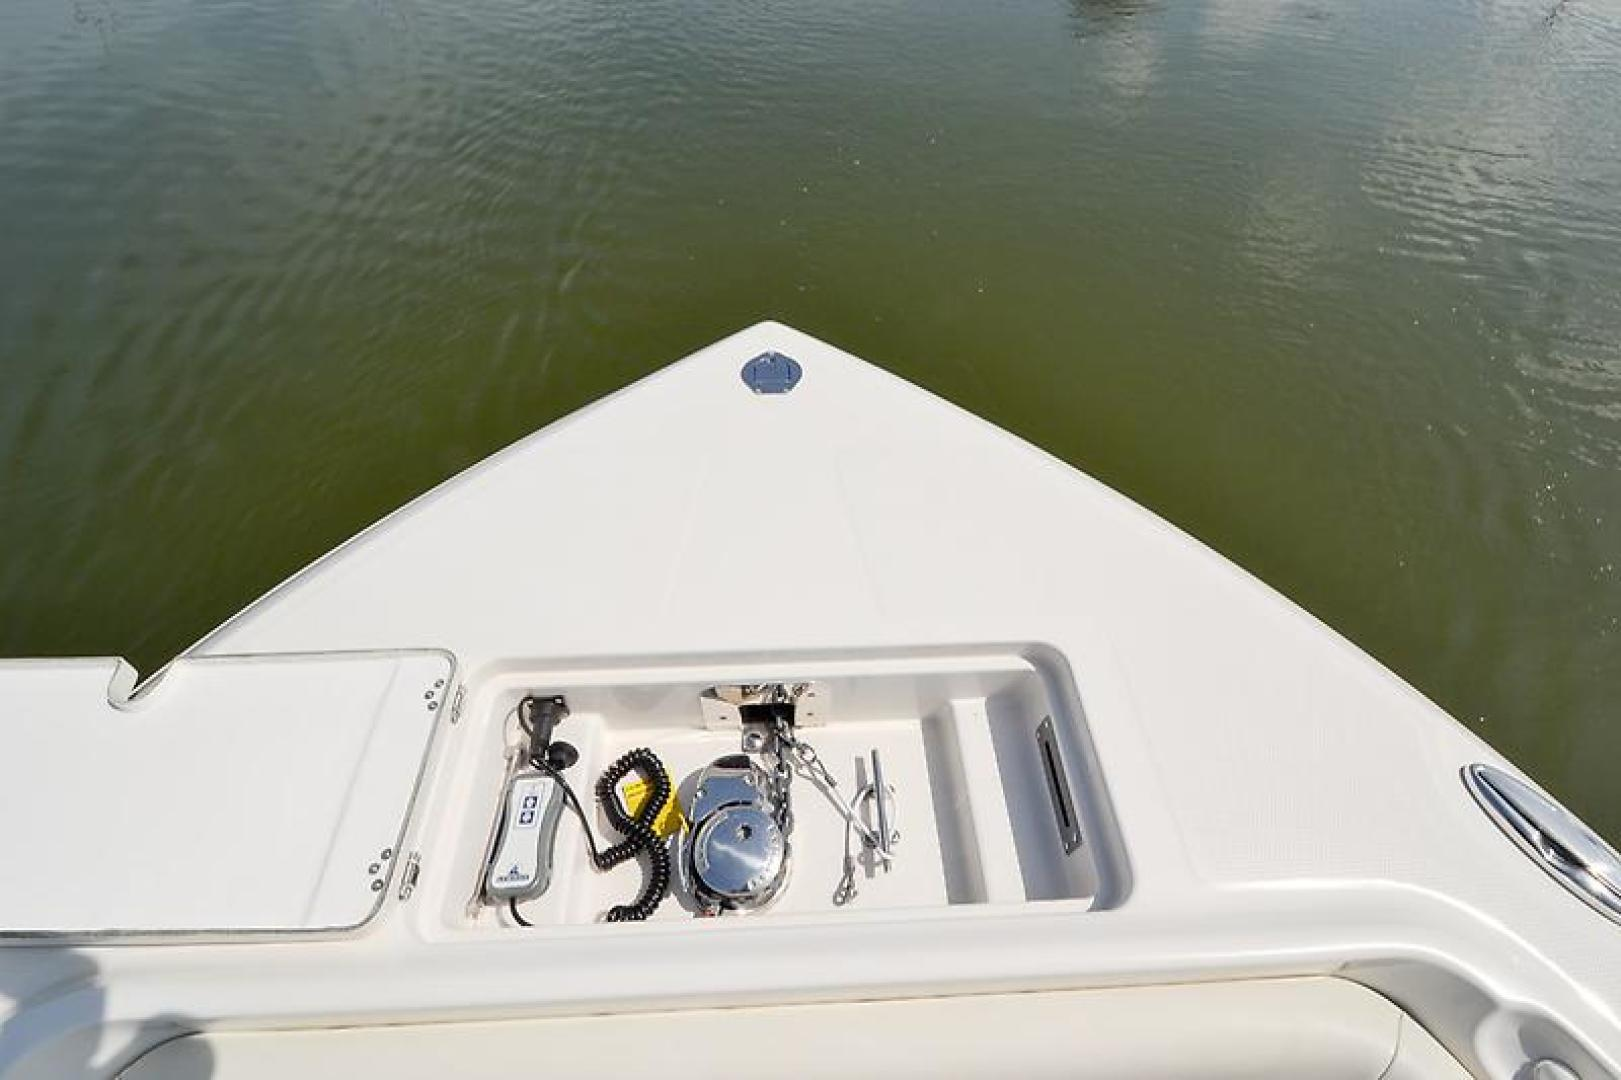 2014 Sailfish 320 cc-42.jpg